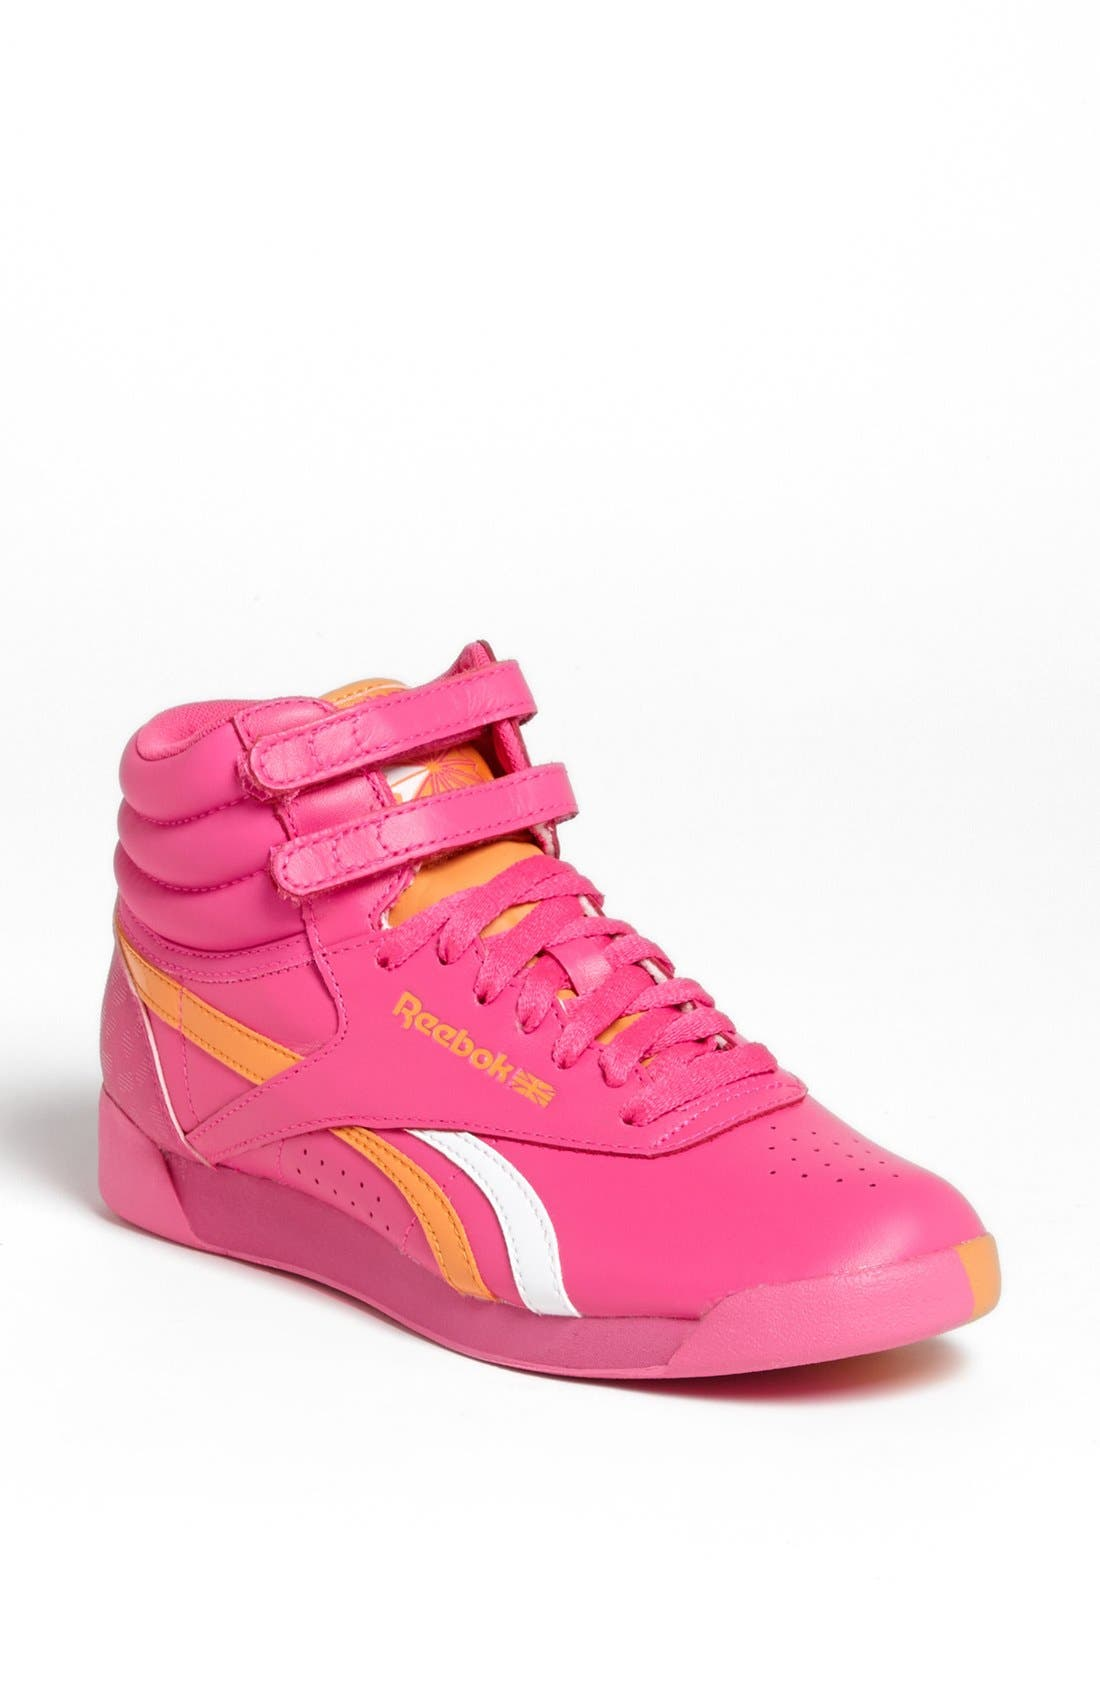 Alternate Image 1 Selected - Reebok 'F/S Hi Splitz' High Top Sneaker (Women)